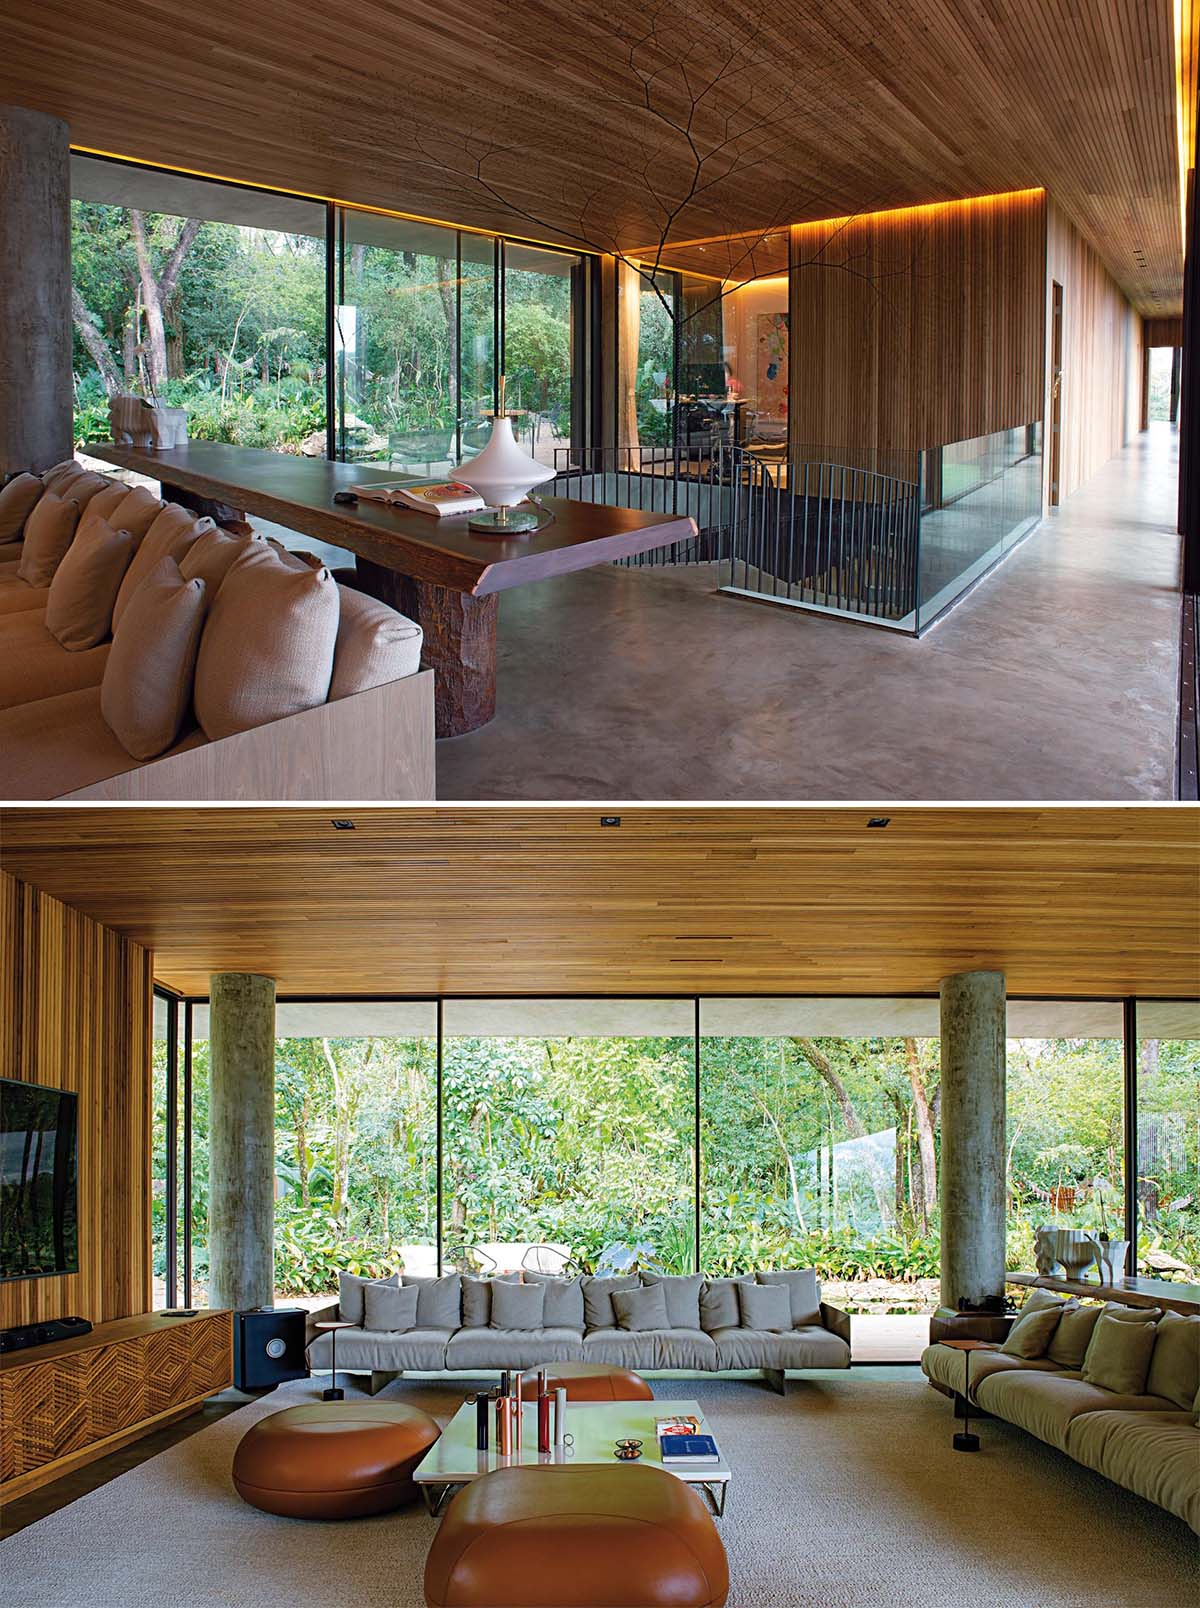 A wood ceiling and golden lighting adds a sense of warmth to this moderninterior, that also includes concrete floors, a hanging fireplace, and glass walls.